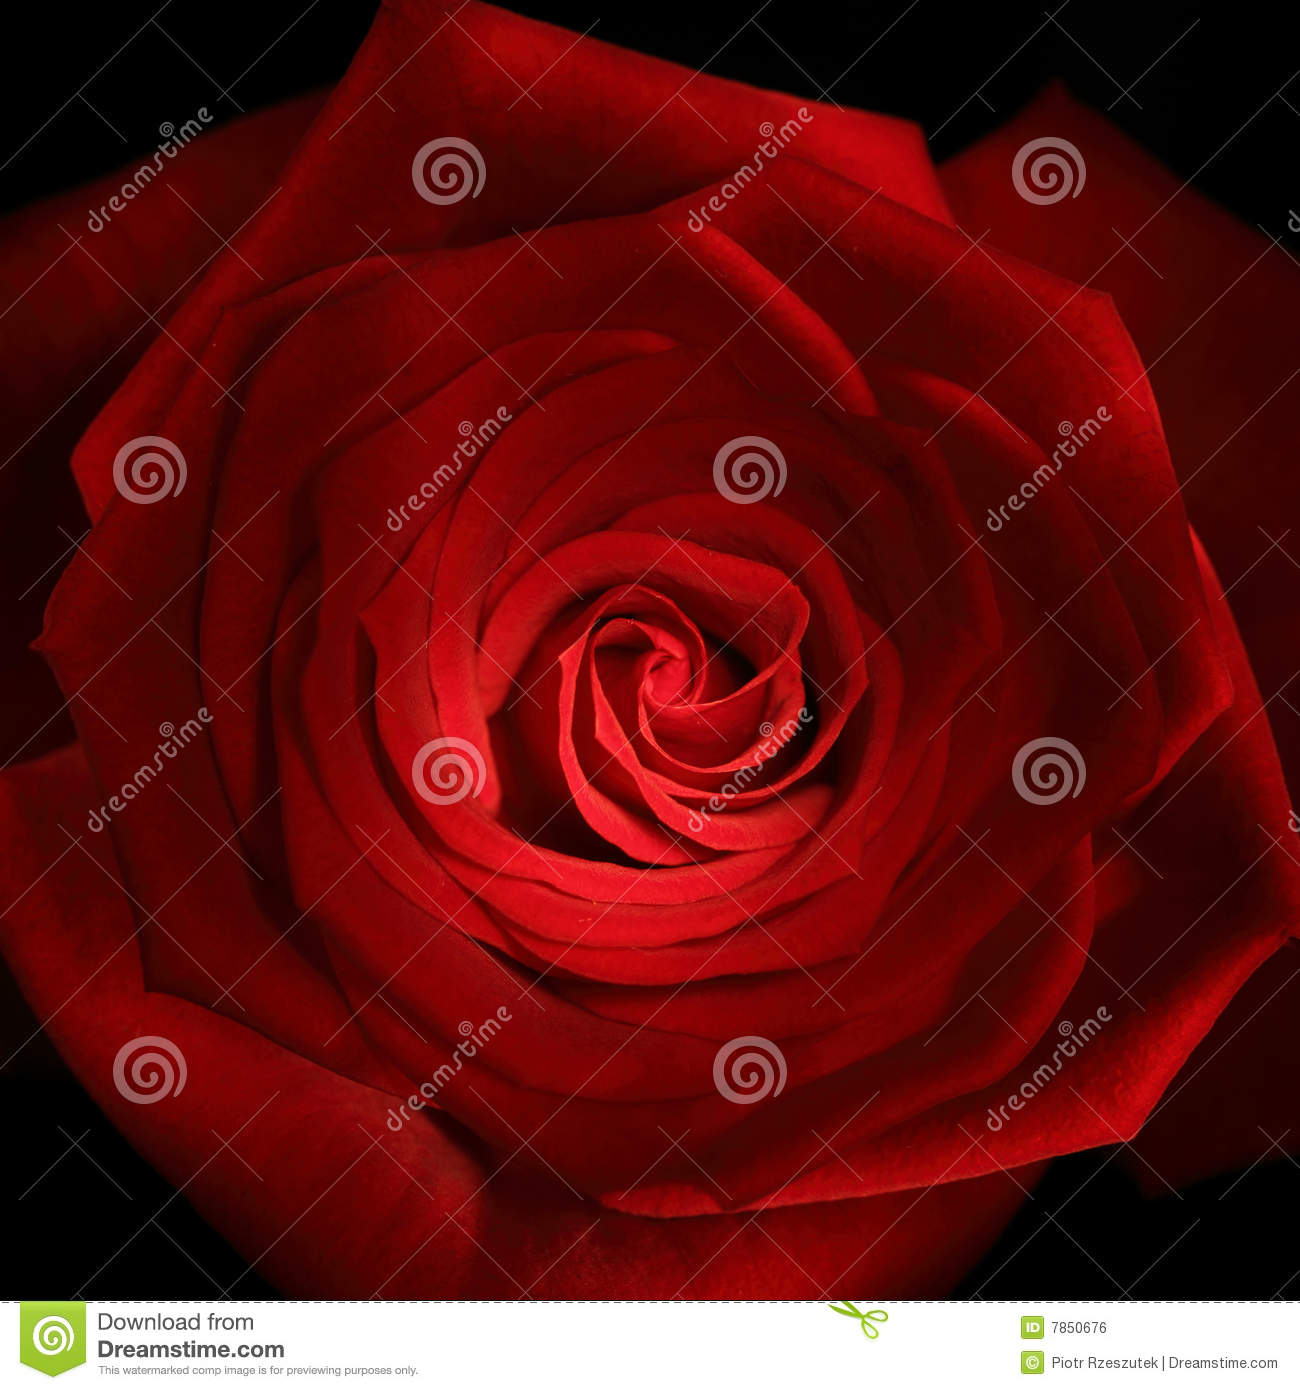 Red rose close up painted with lightstick